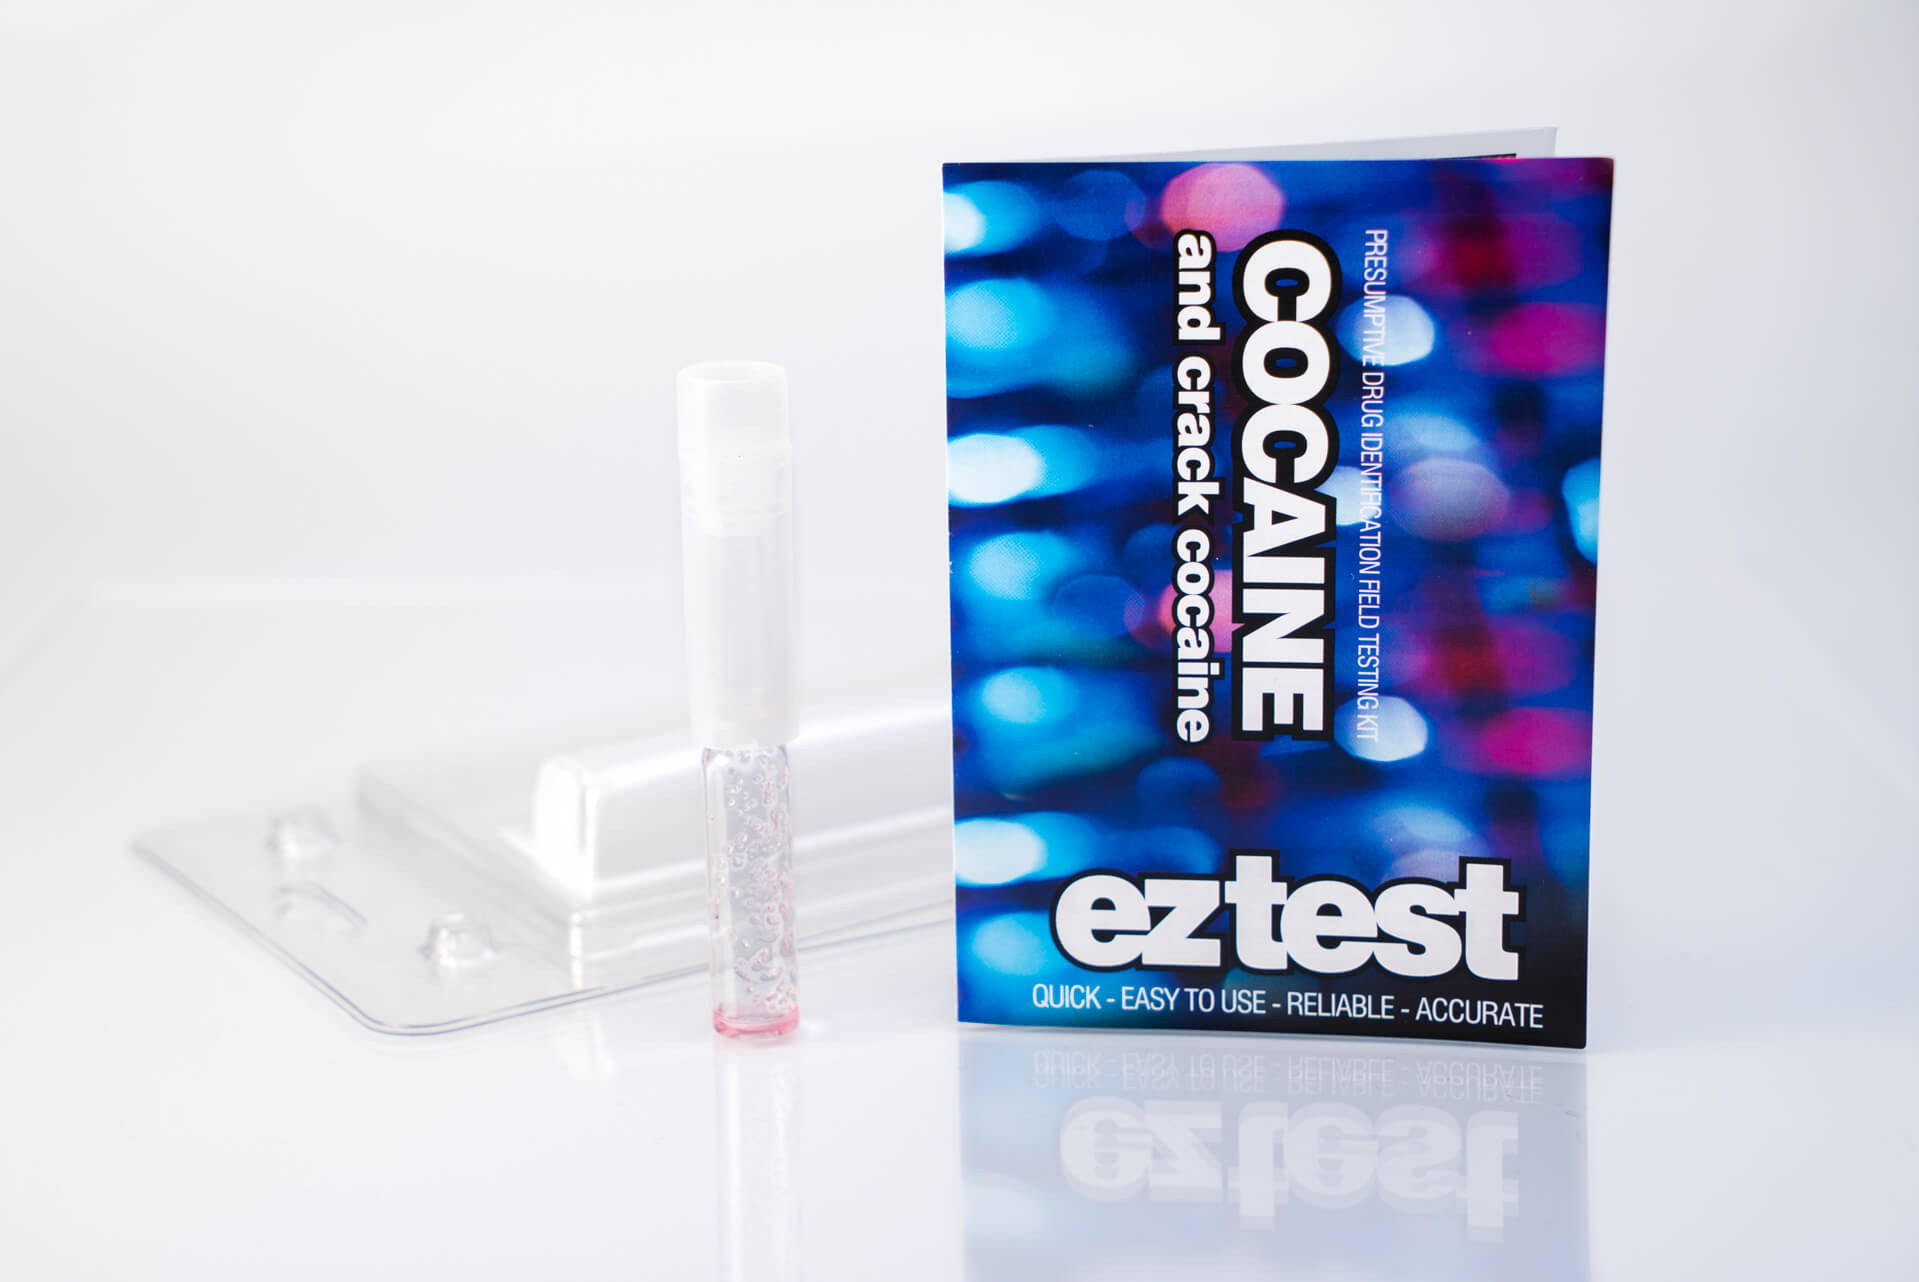 Kit de Test de Cocaïne à Usage Unique